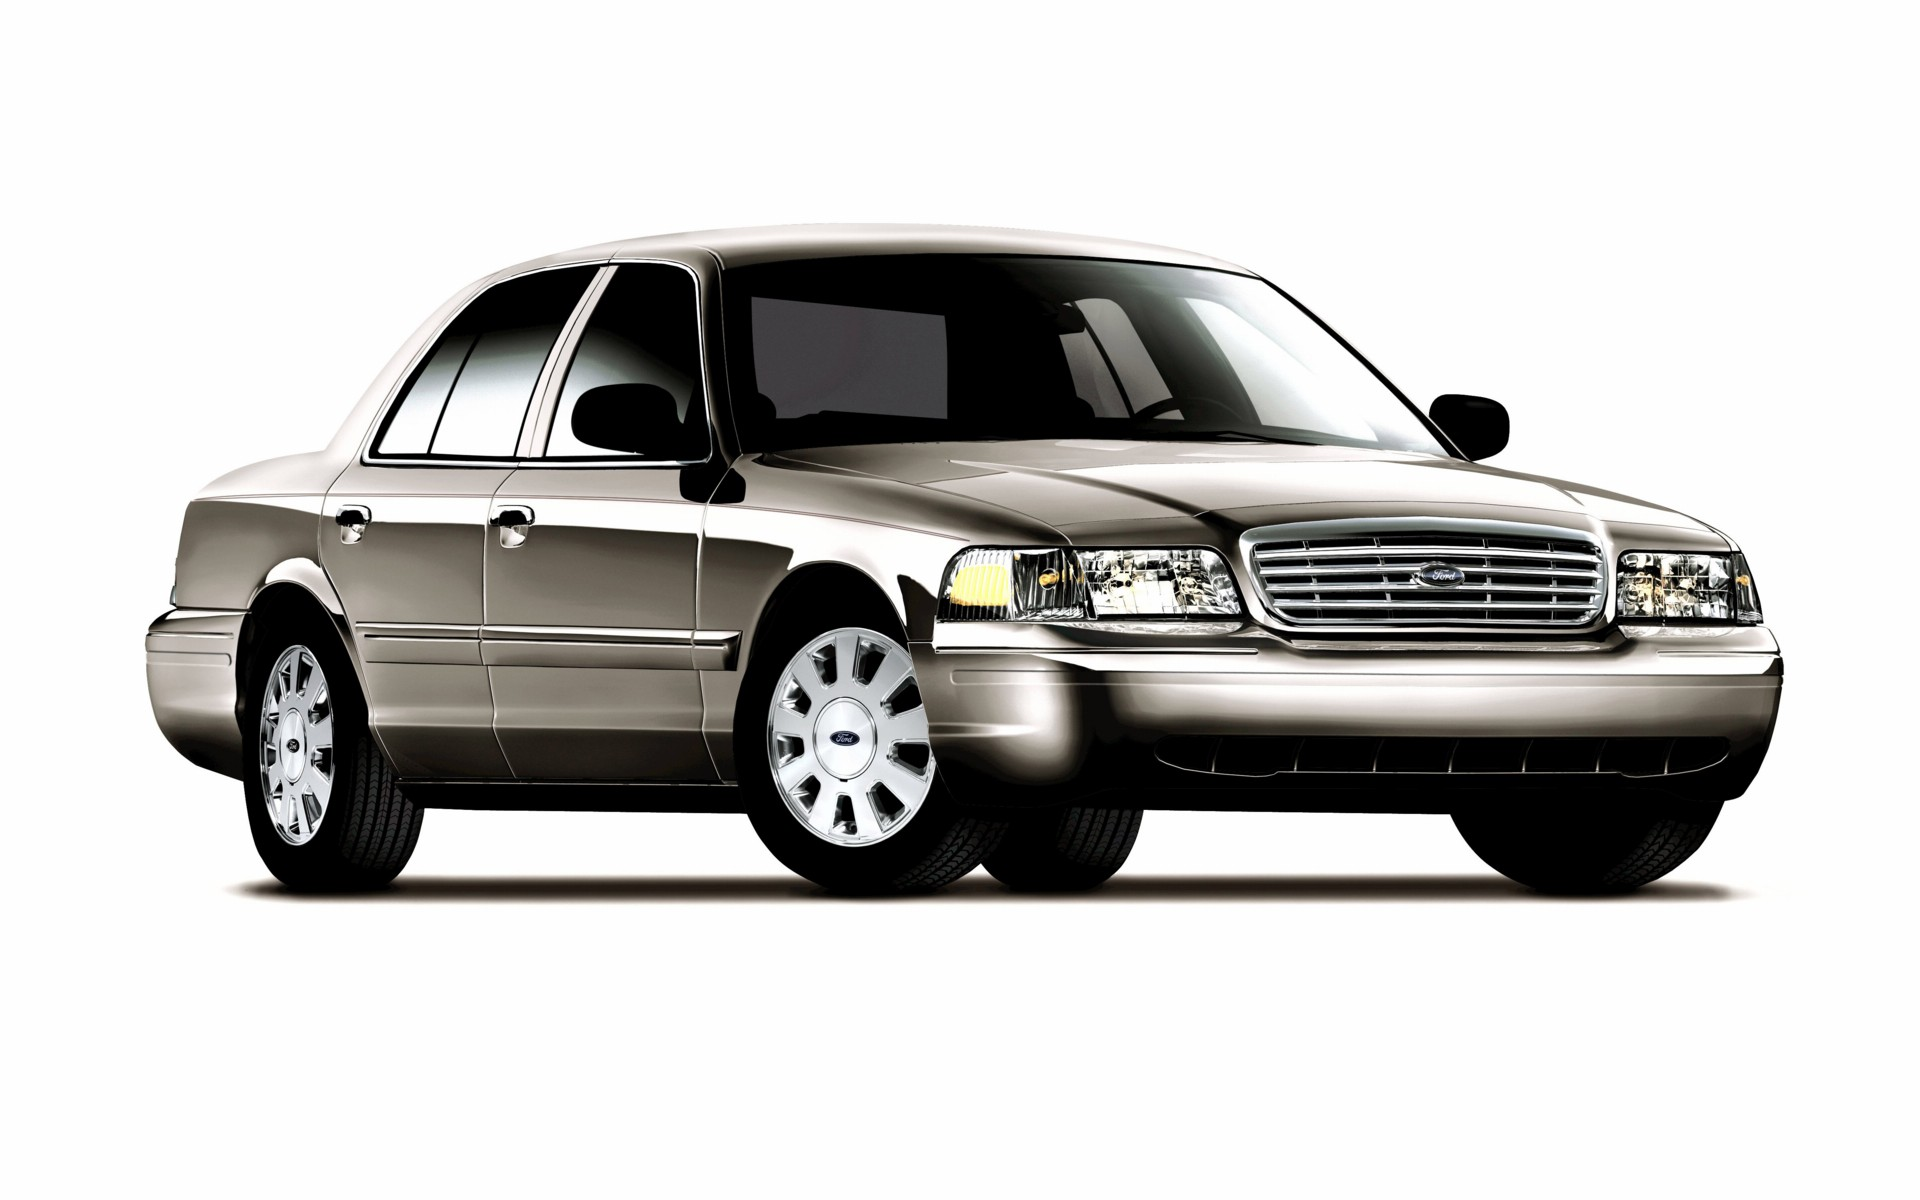 2007 ford crown victoria pictures history value. Black Bedroom Furniture Sets. Home Design Ideas